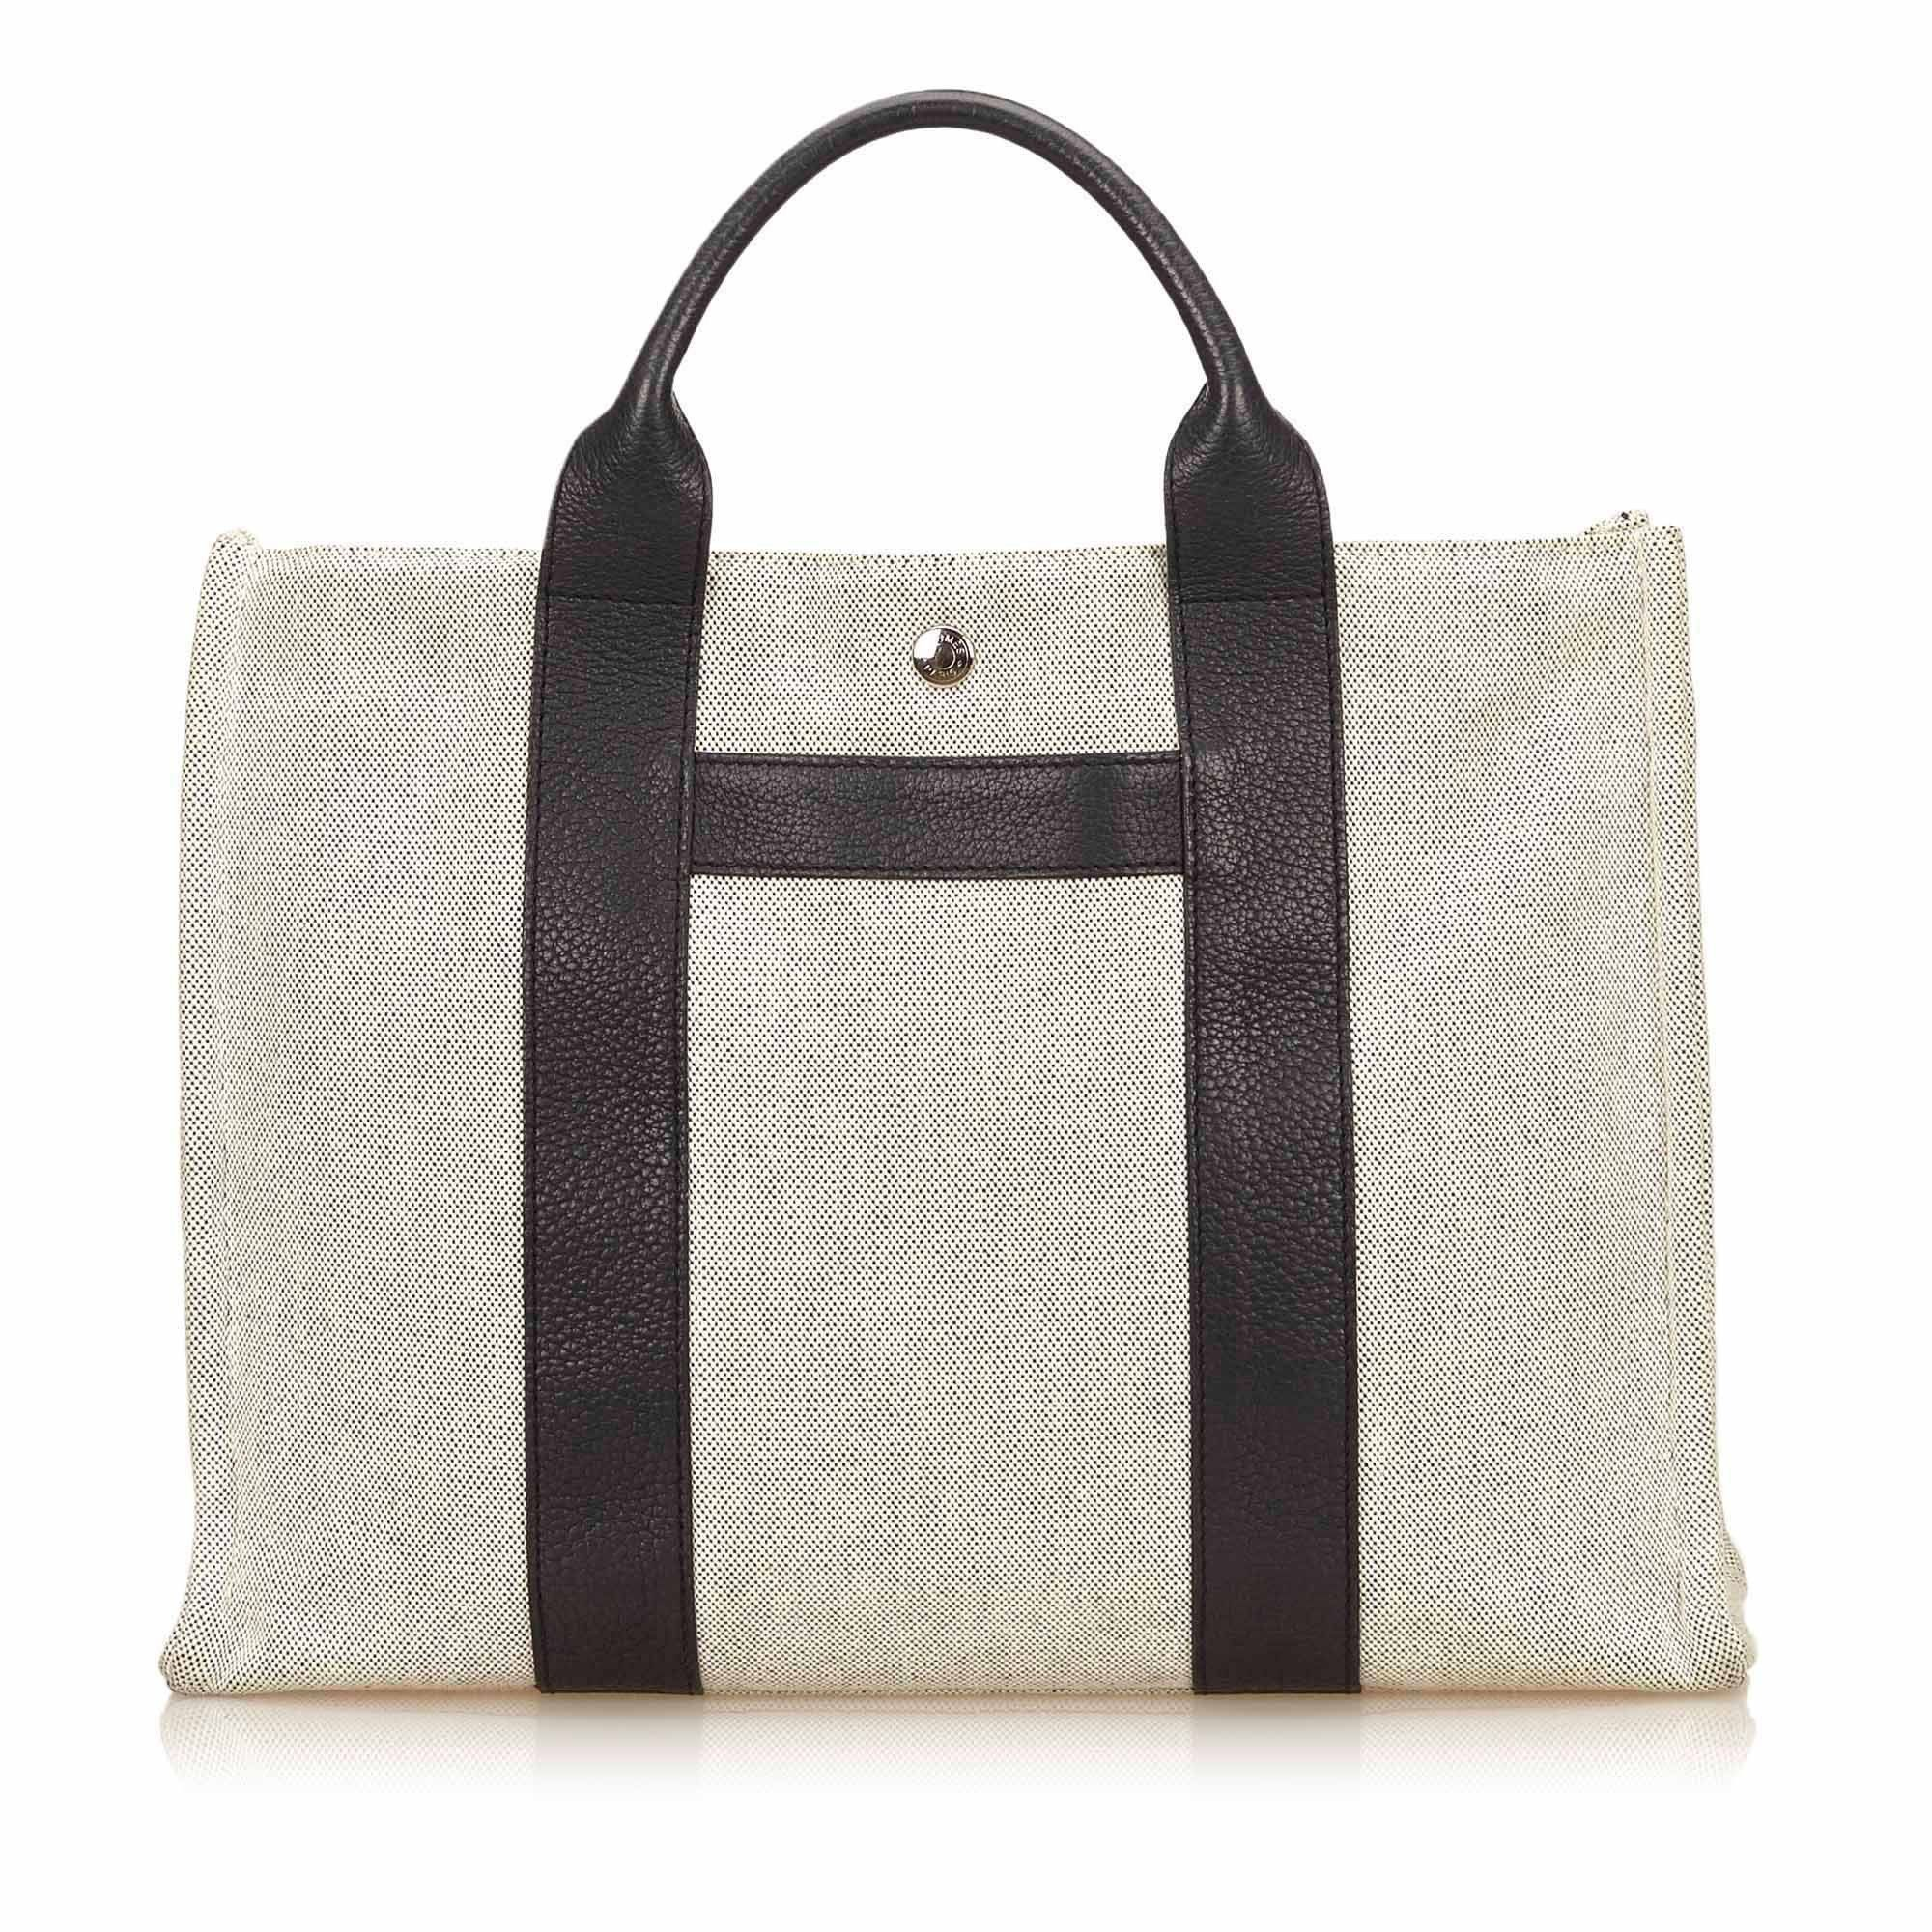 HERMES Natural Toile Canvas and Black Clemence Leather Sac Harnais MM Tote Bag